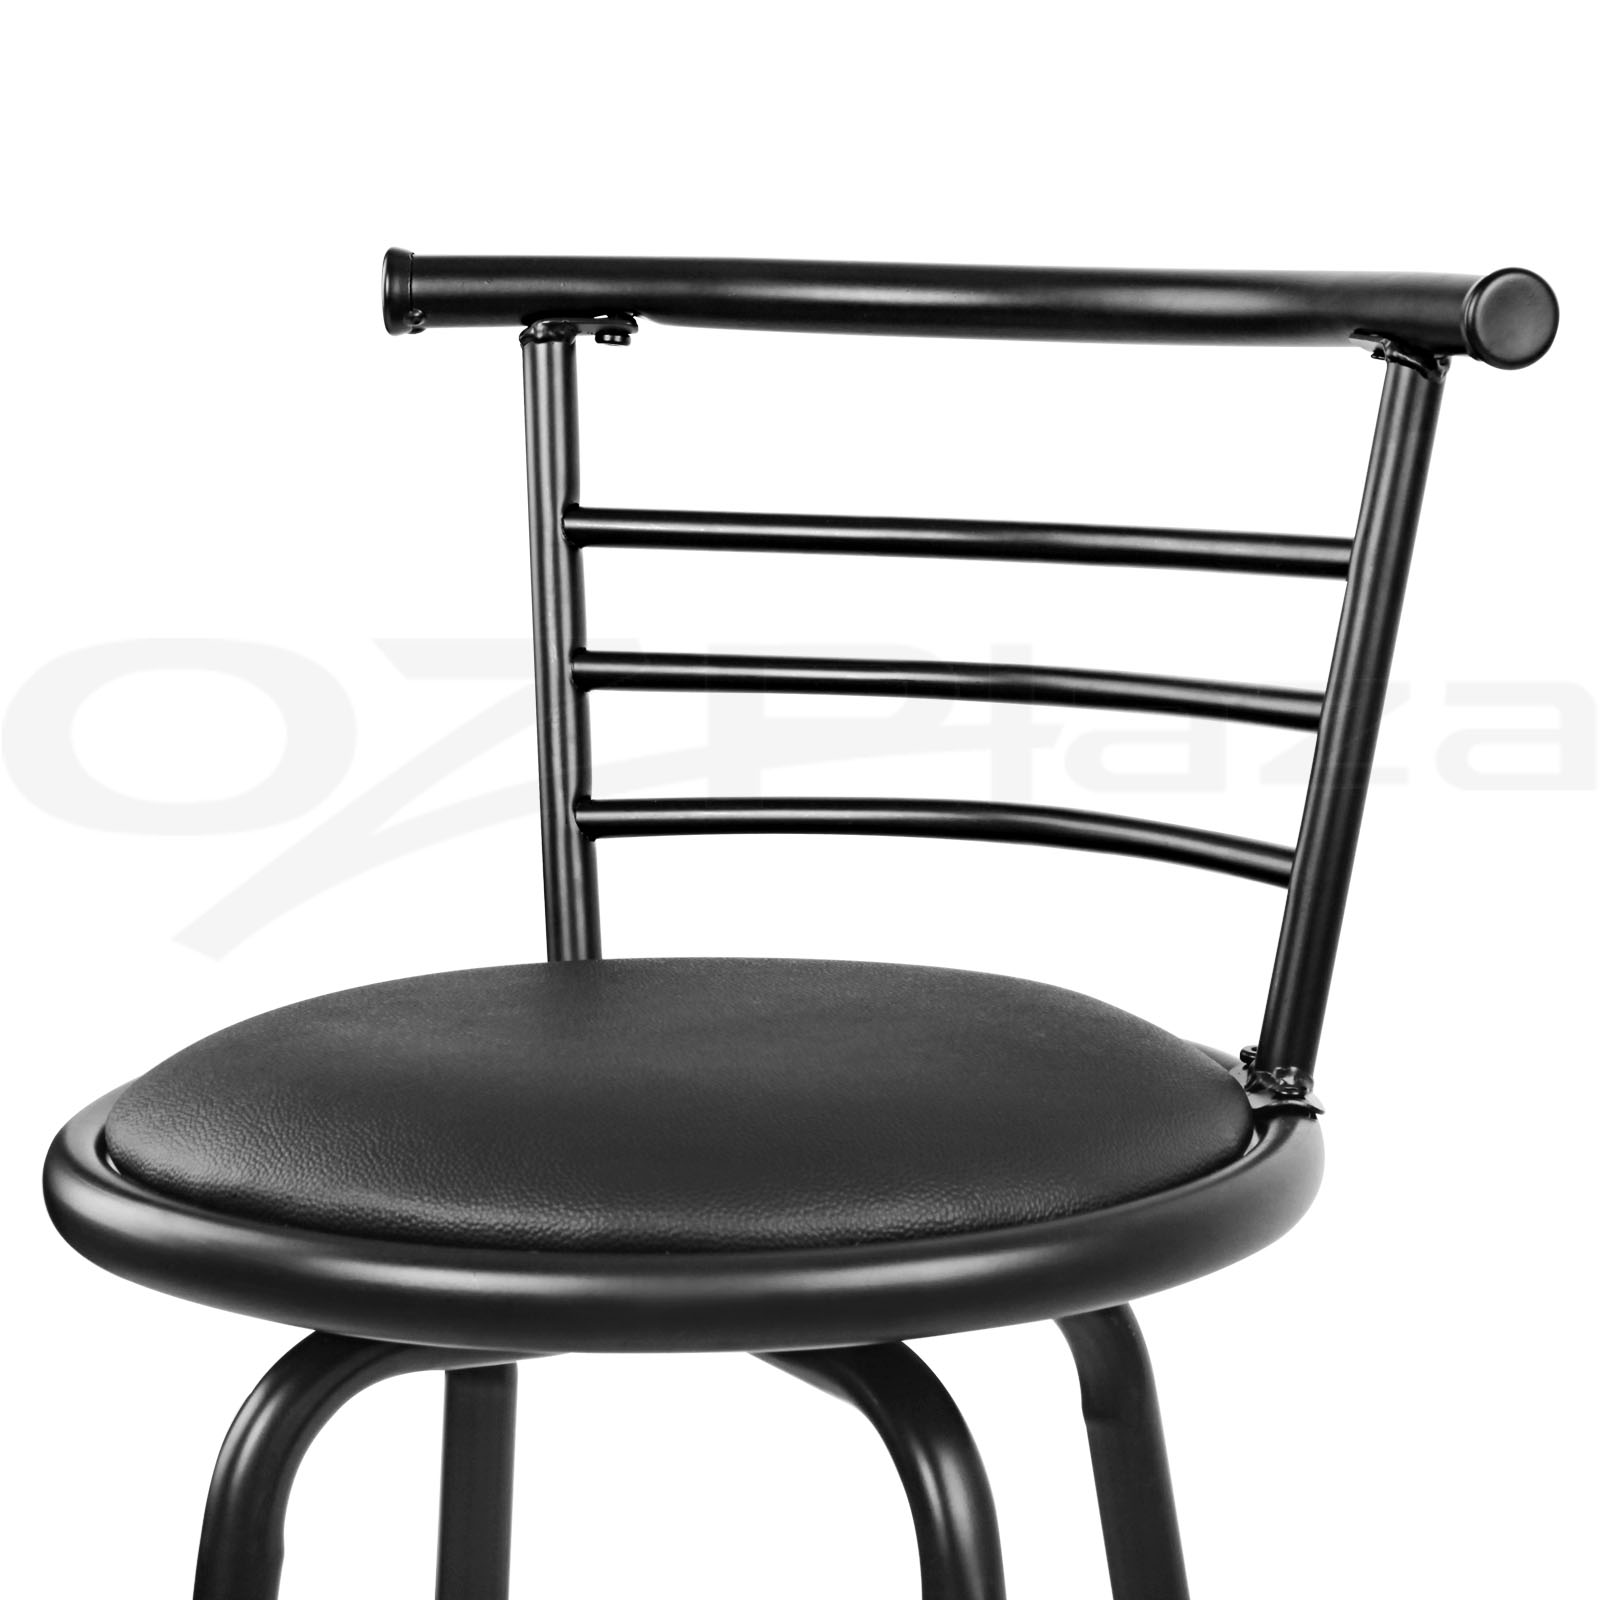 Swivel Counter Stool Bar Stool High Chair Black Kitchen: 4x Bar Stools PU Leather Barstool Swivel Backrest Kitchen